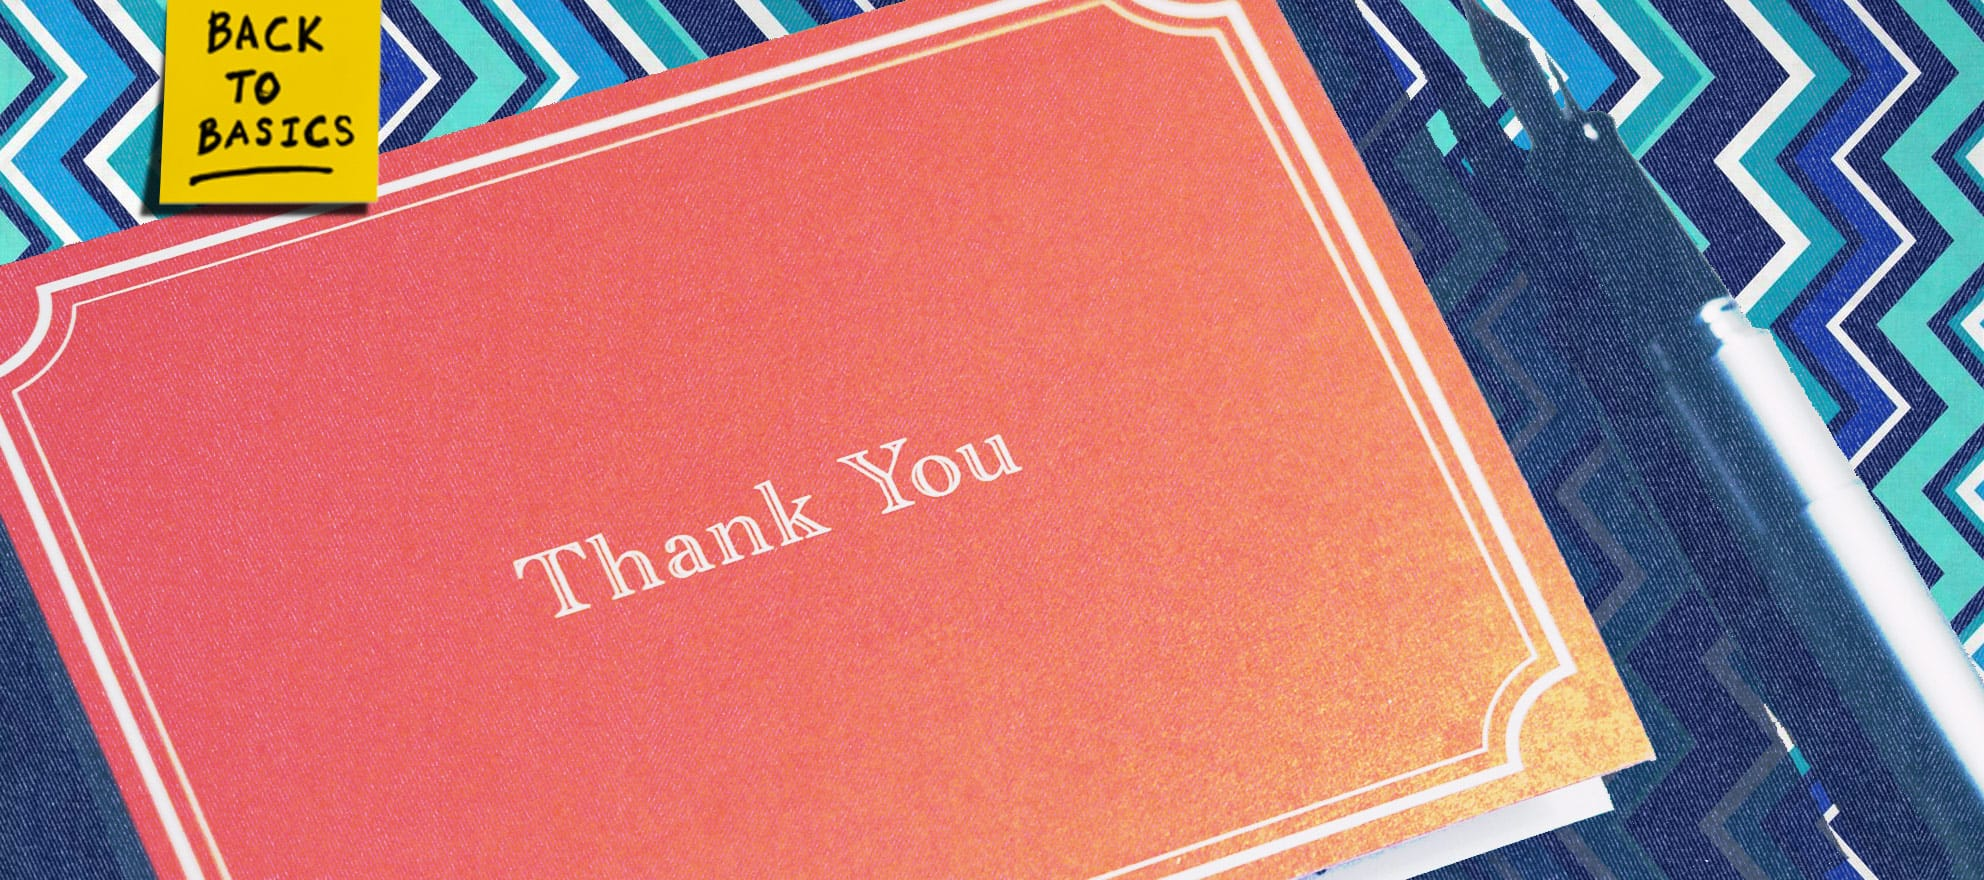 9 ideas for making your 'thank you' stand out